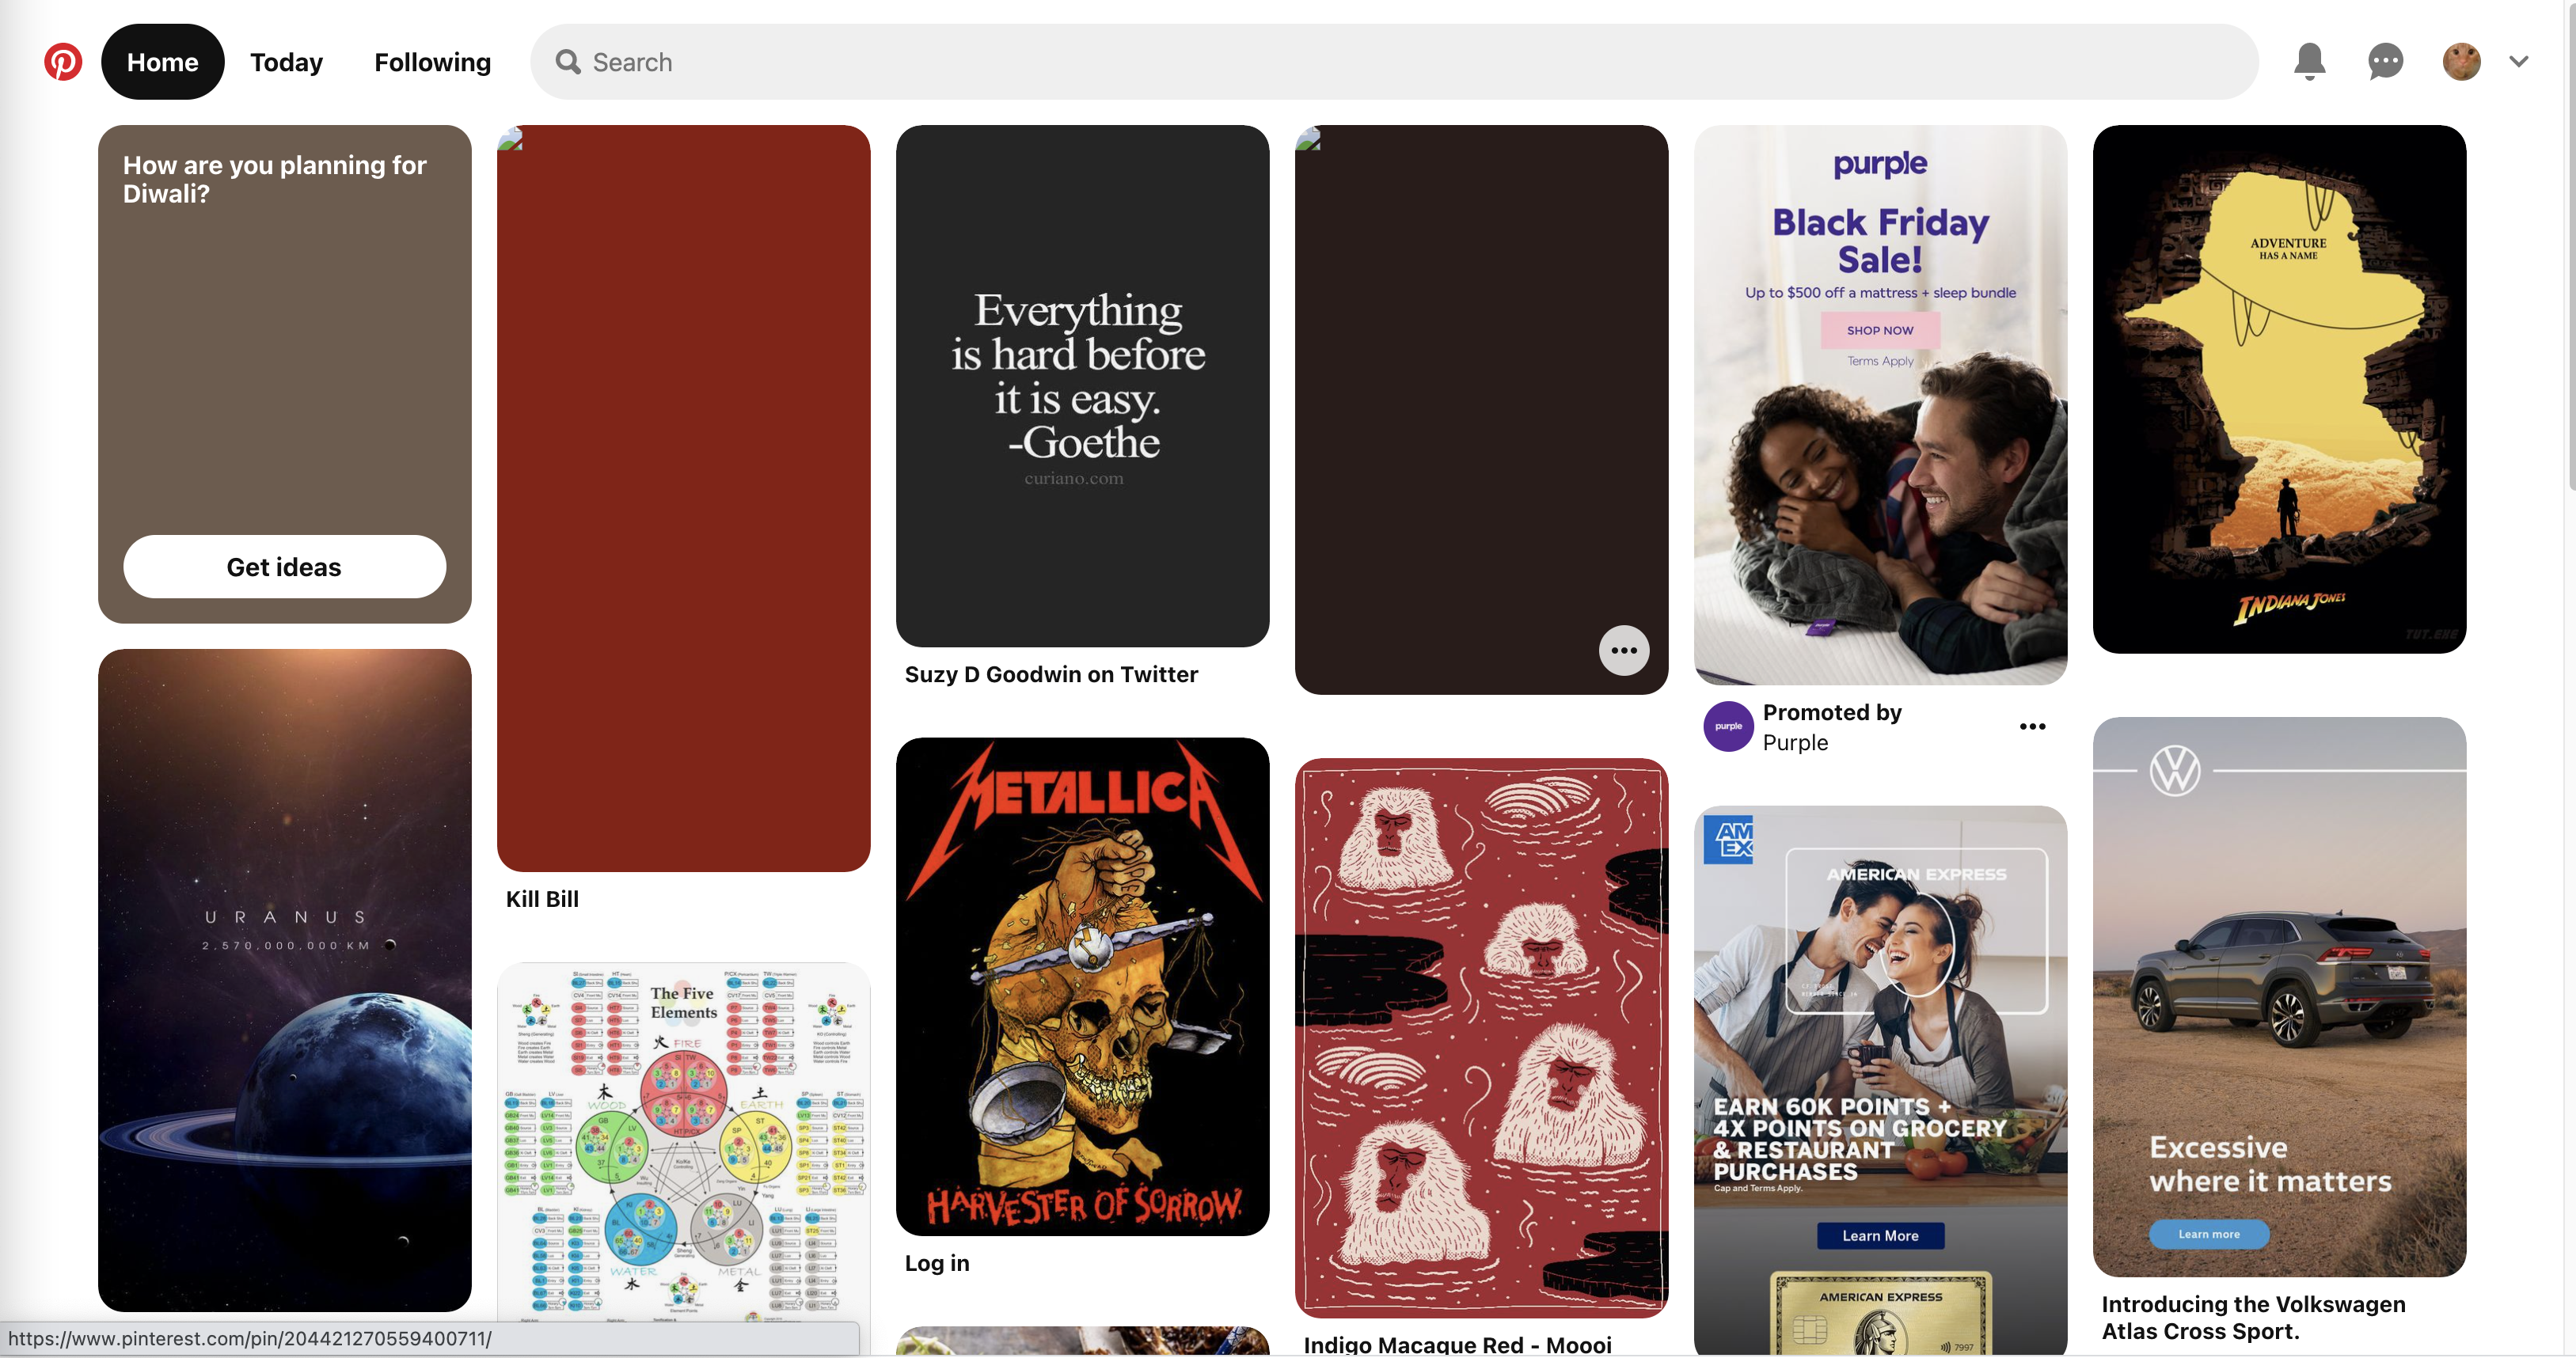 Pinterest home page showing masonry layout where the images will display next to each other regardless of height